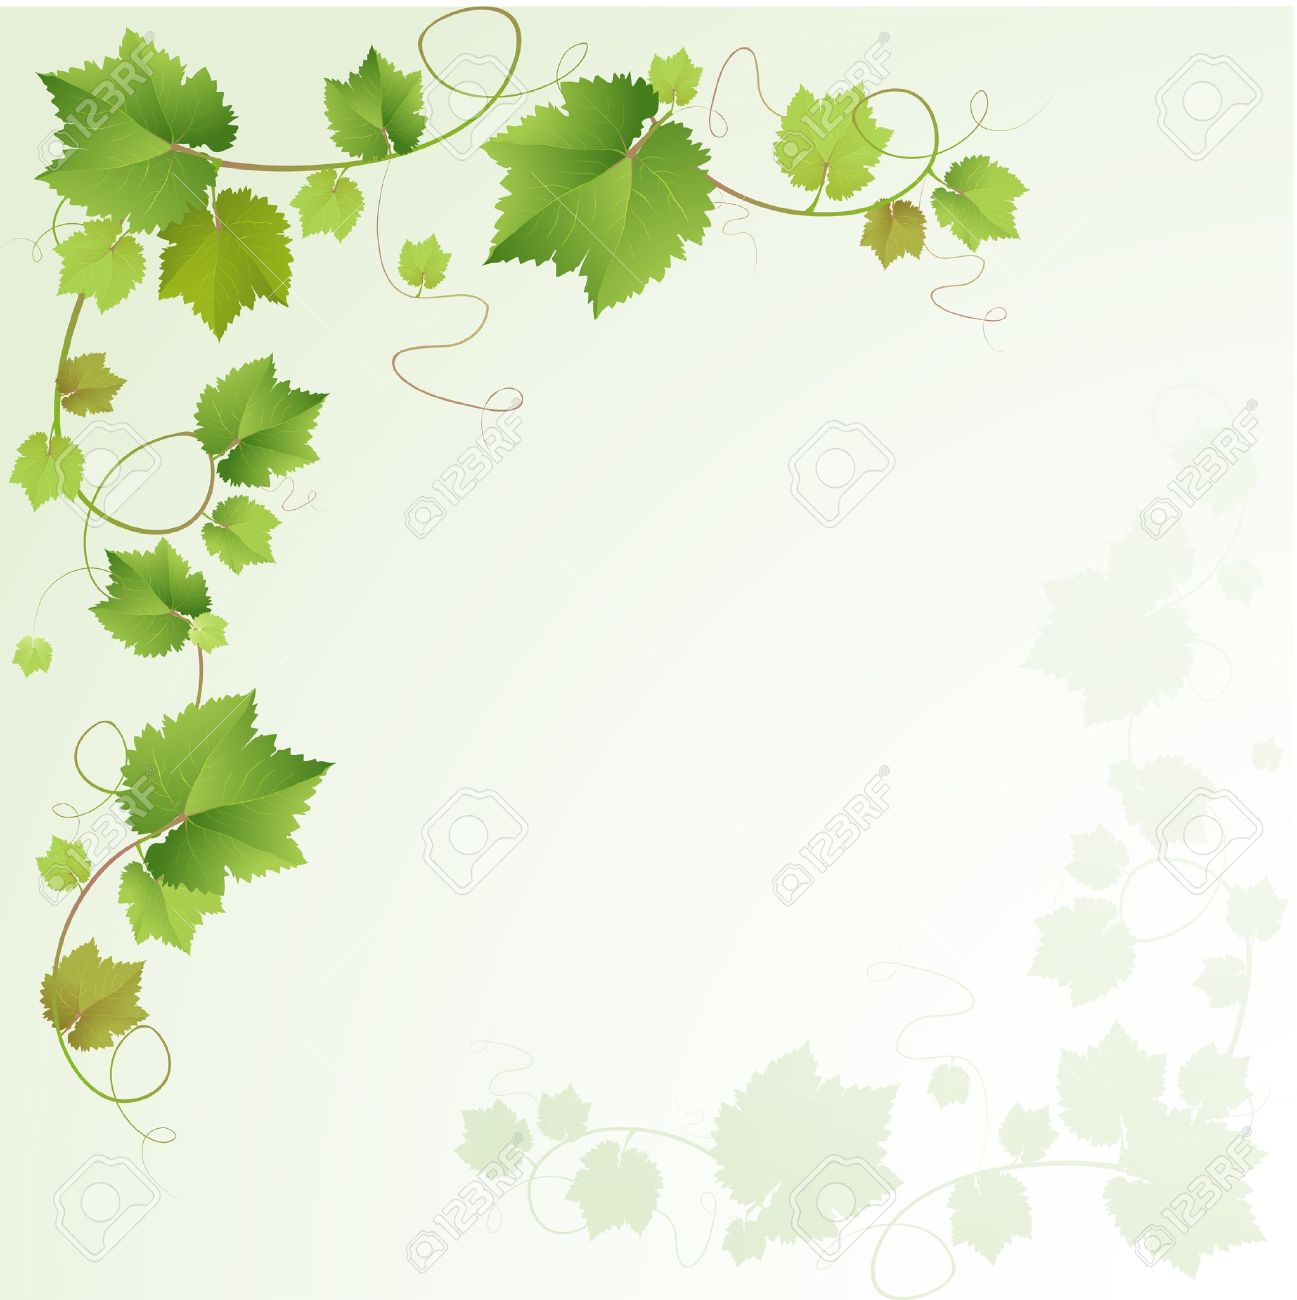 Grapes Vine Background Royalty Cliparts Vectors And Stock 1297x1300